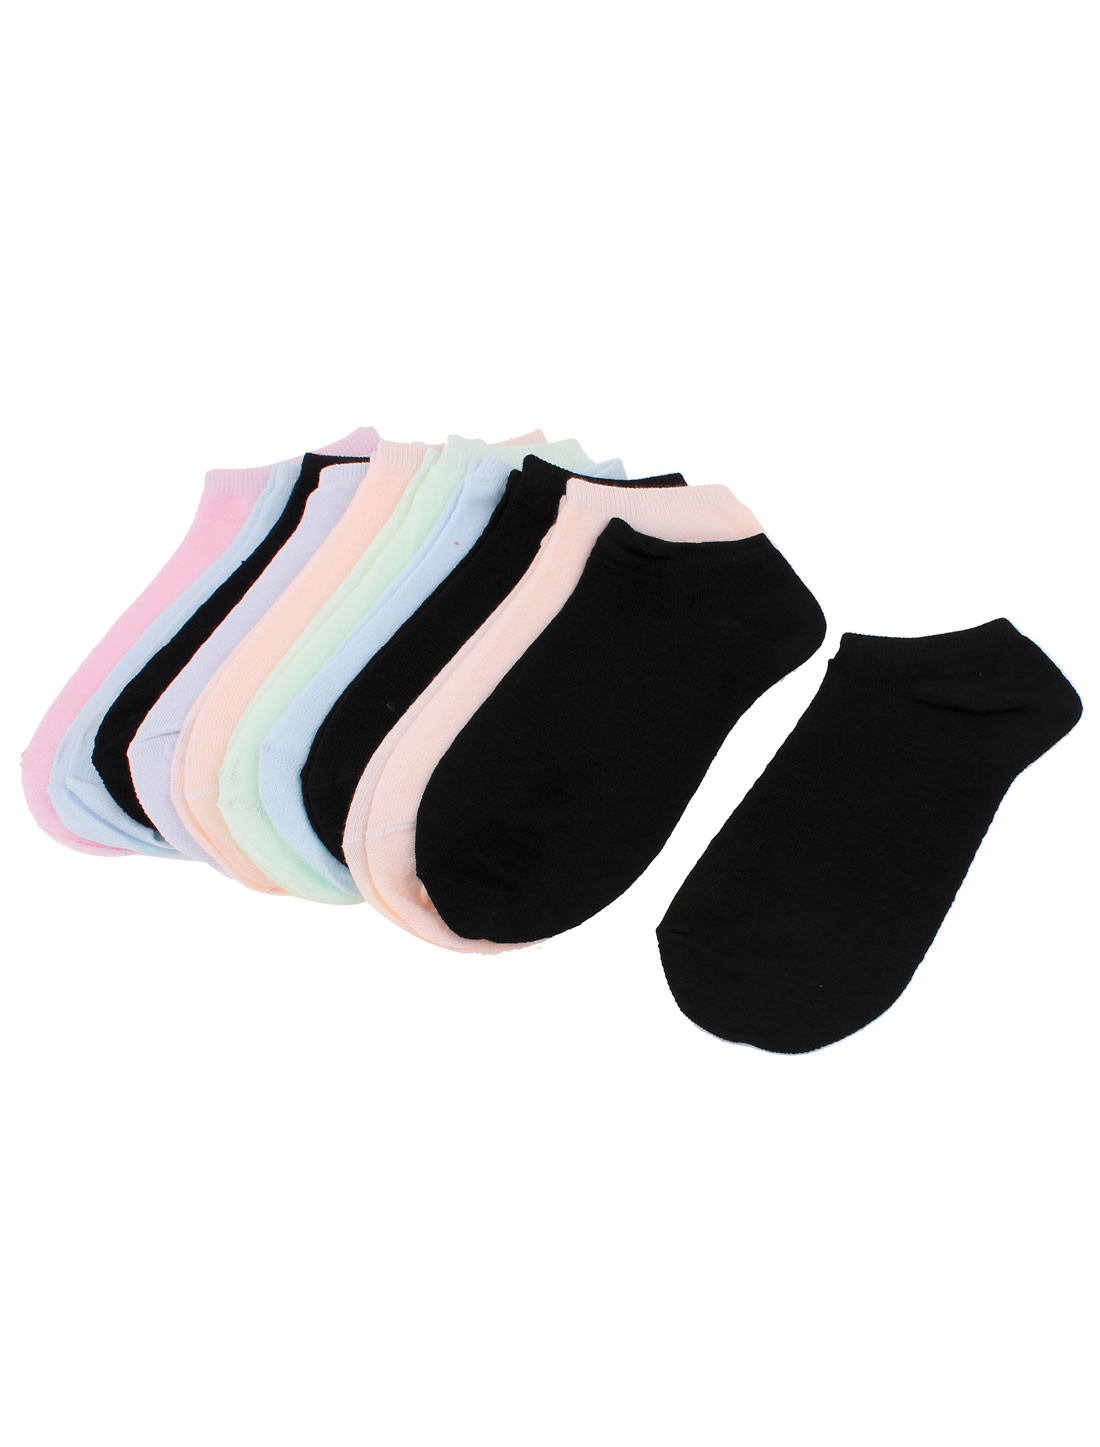 Elastic Cotton Blends Pure Pattern Ankle Socks for Lady Assorted Color 10 Pairs